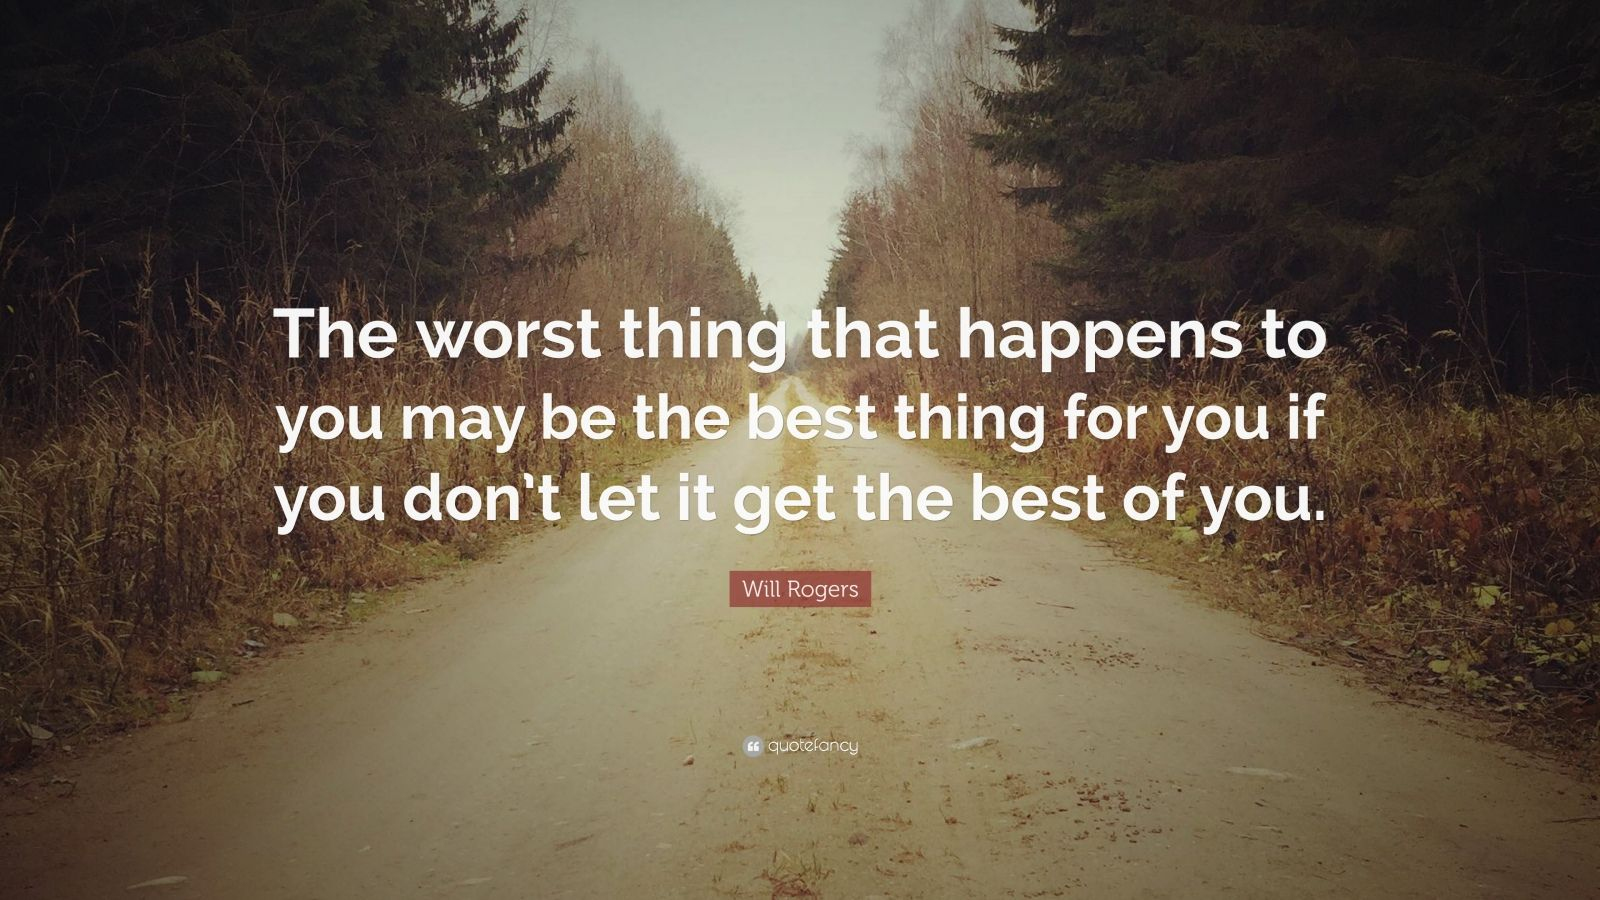 """Will Rogers Quote: """"The worst thing that happens to you may be the best thing for you if you don't let it get the best of you."""""""